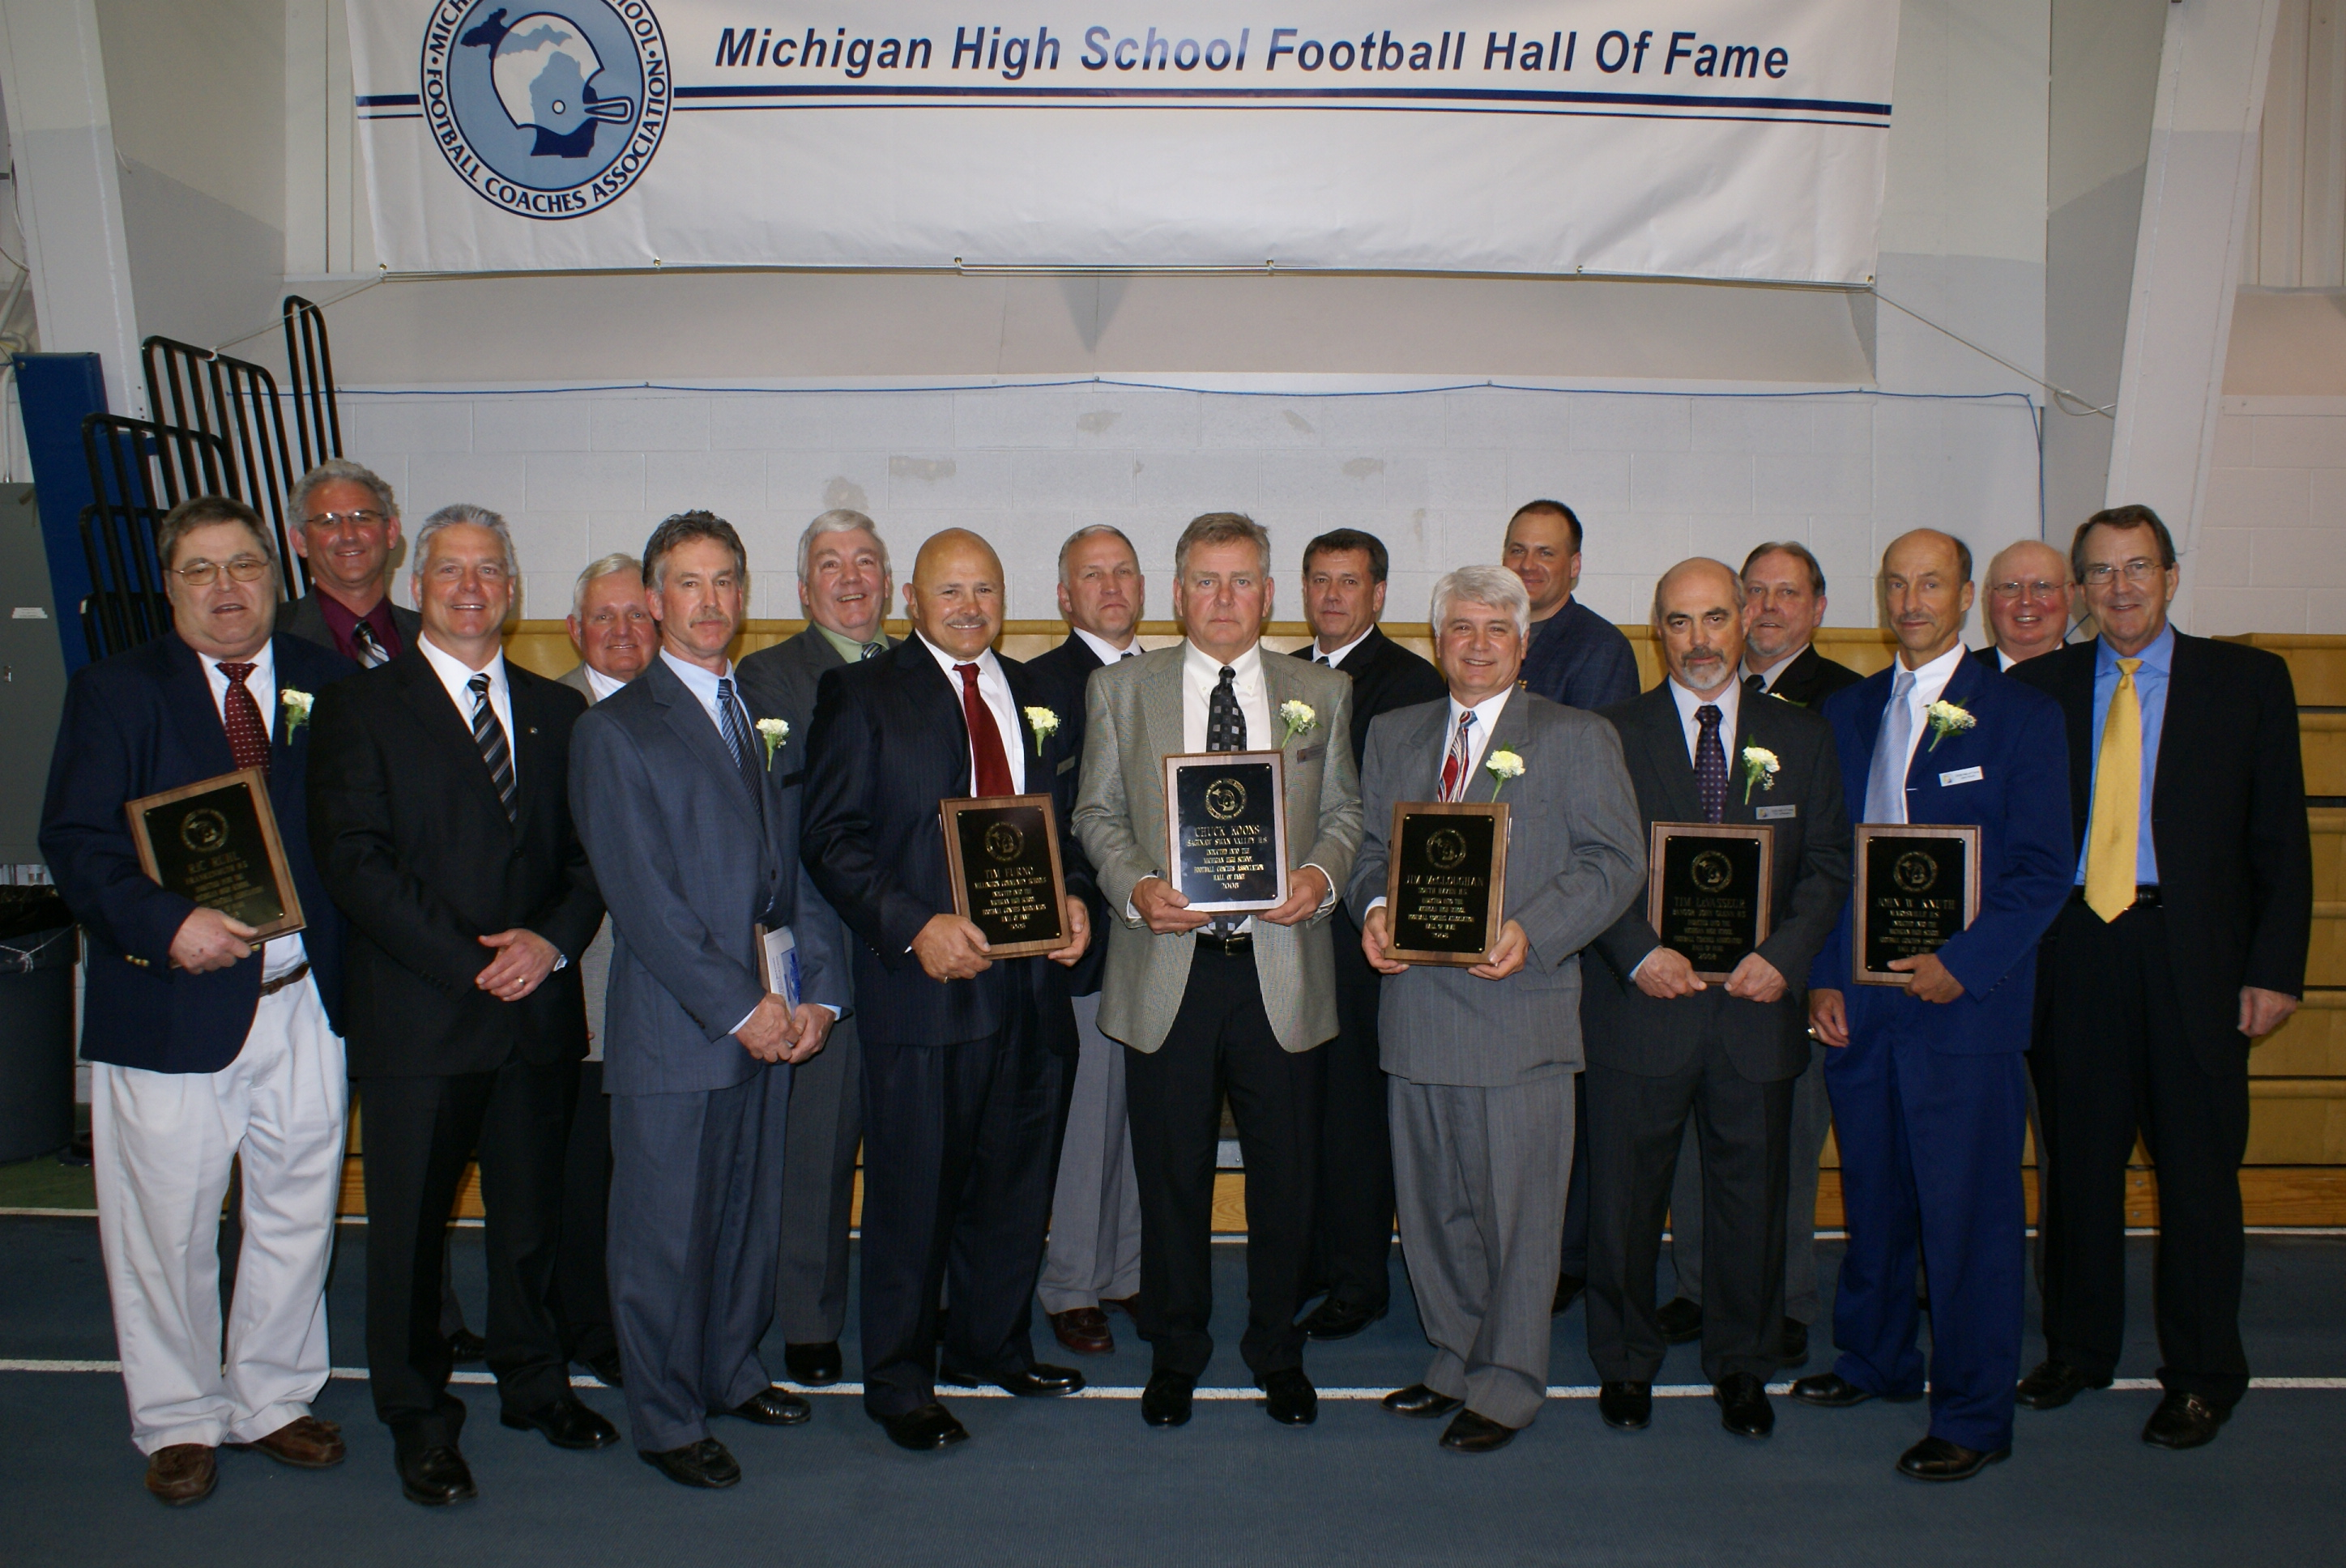 2008 HoF Group